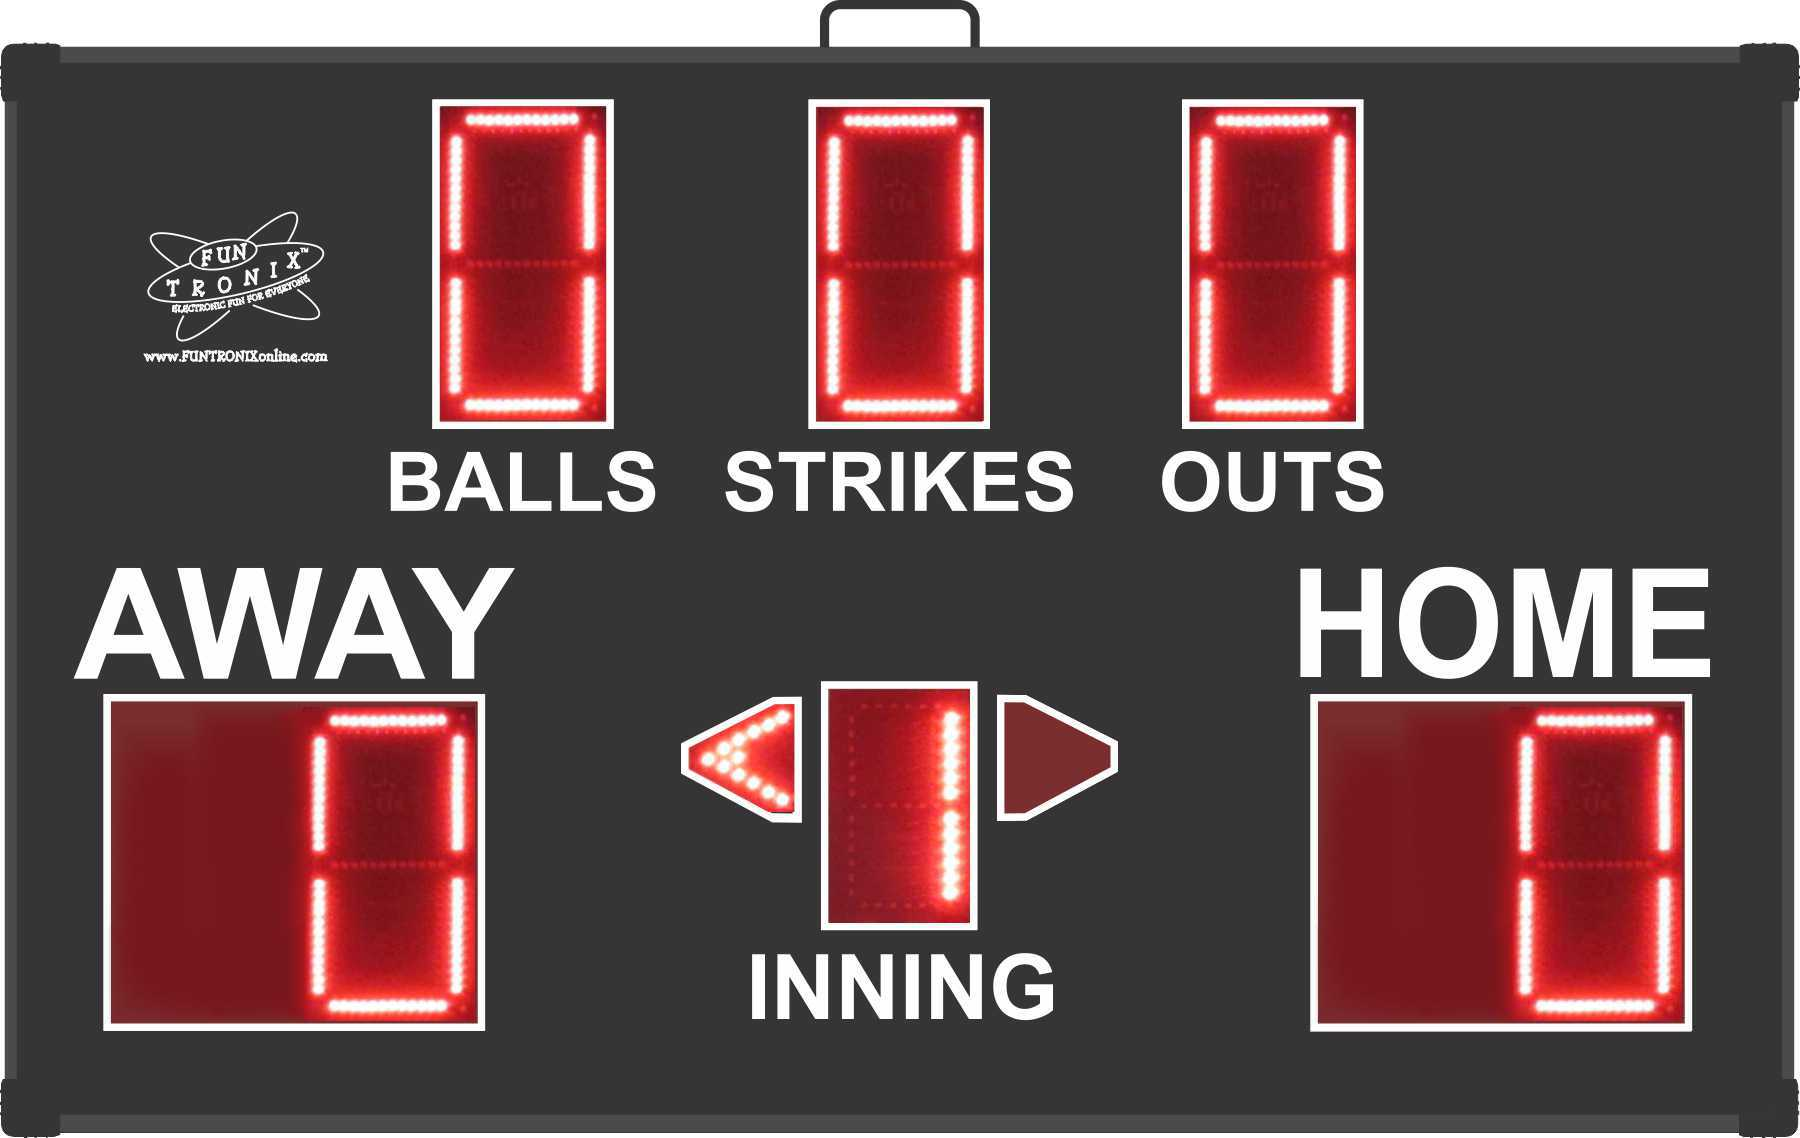 SNT-800BB Portable Baseball Scoreboard